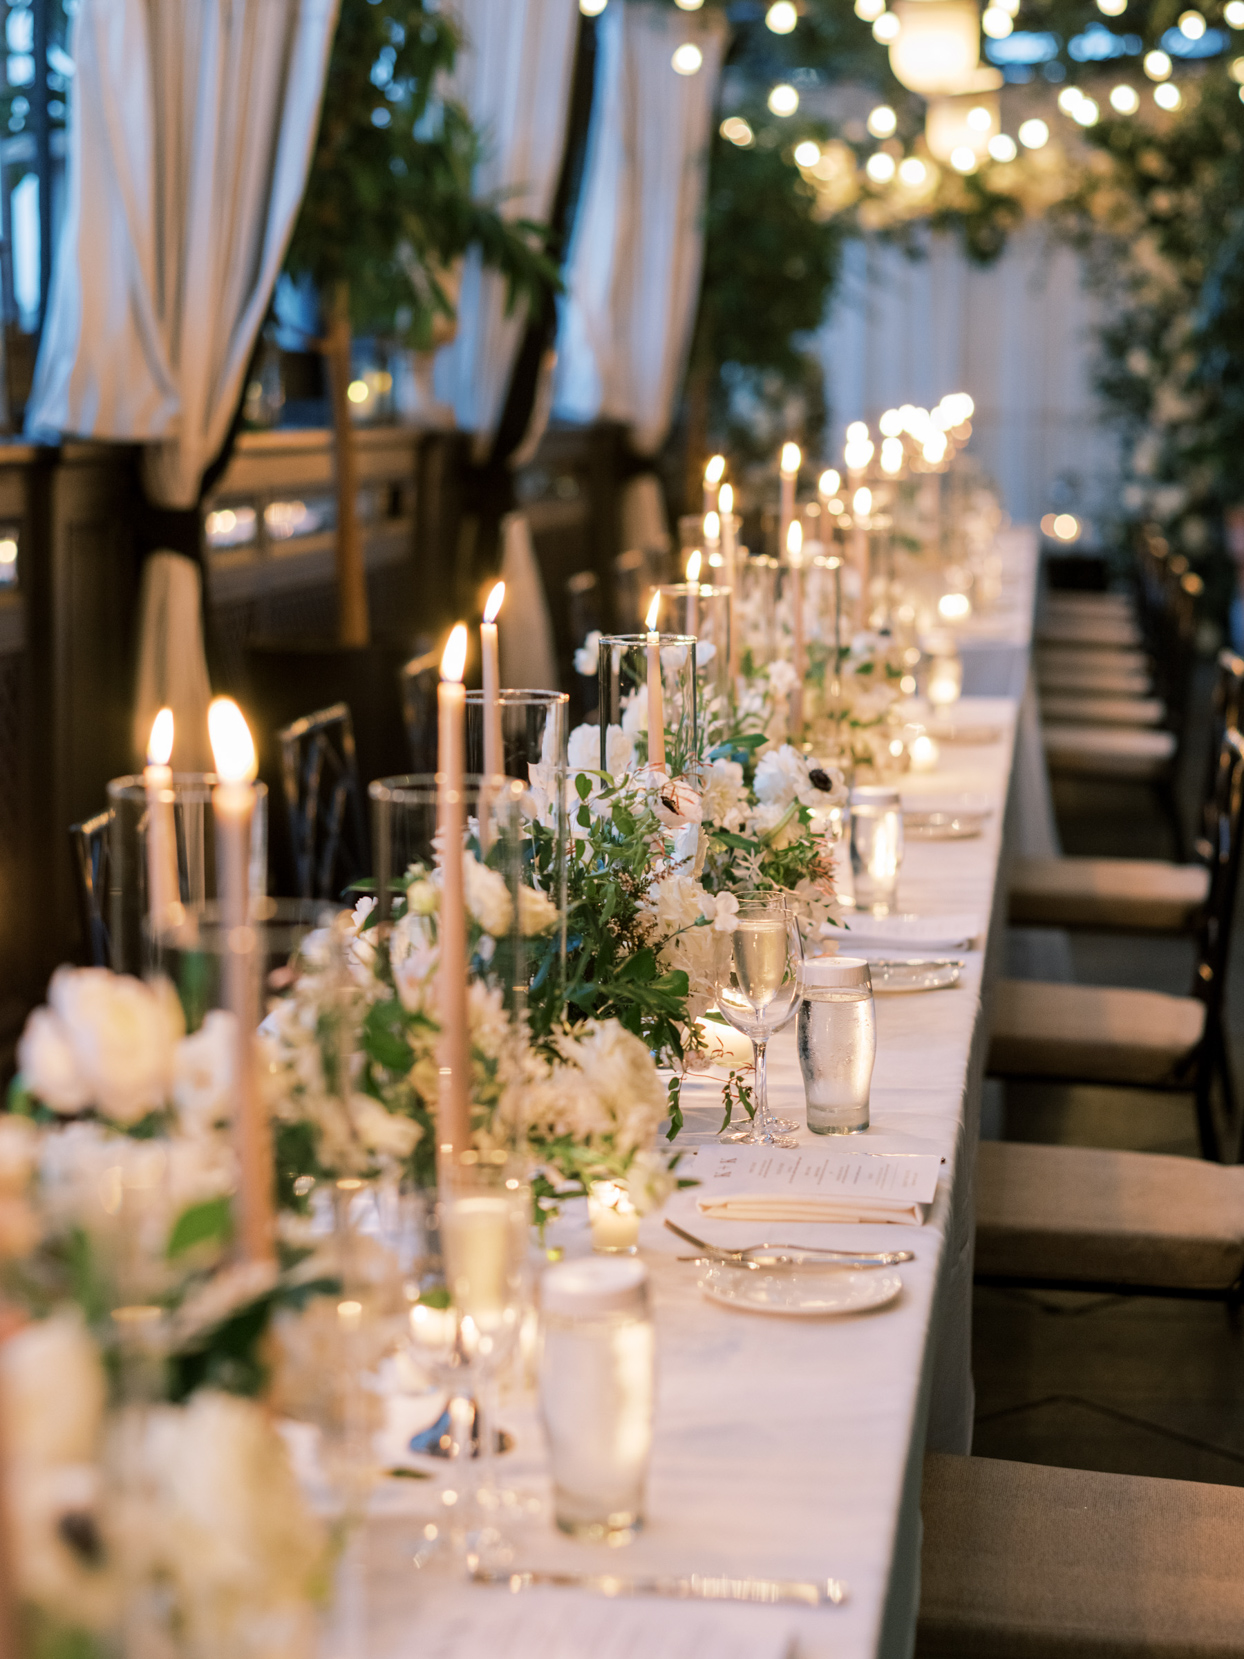 long reception tables lit with candles and floral decor